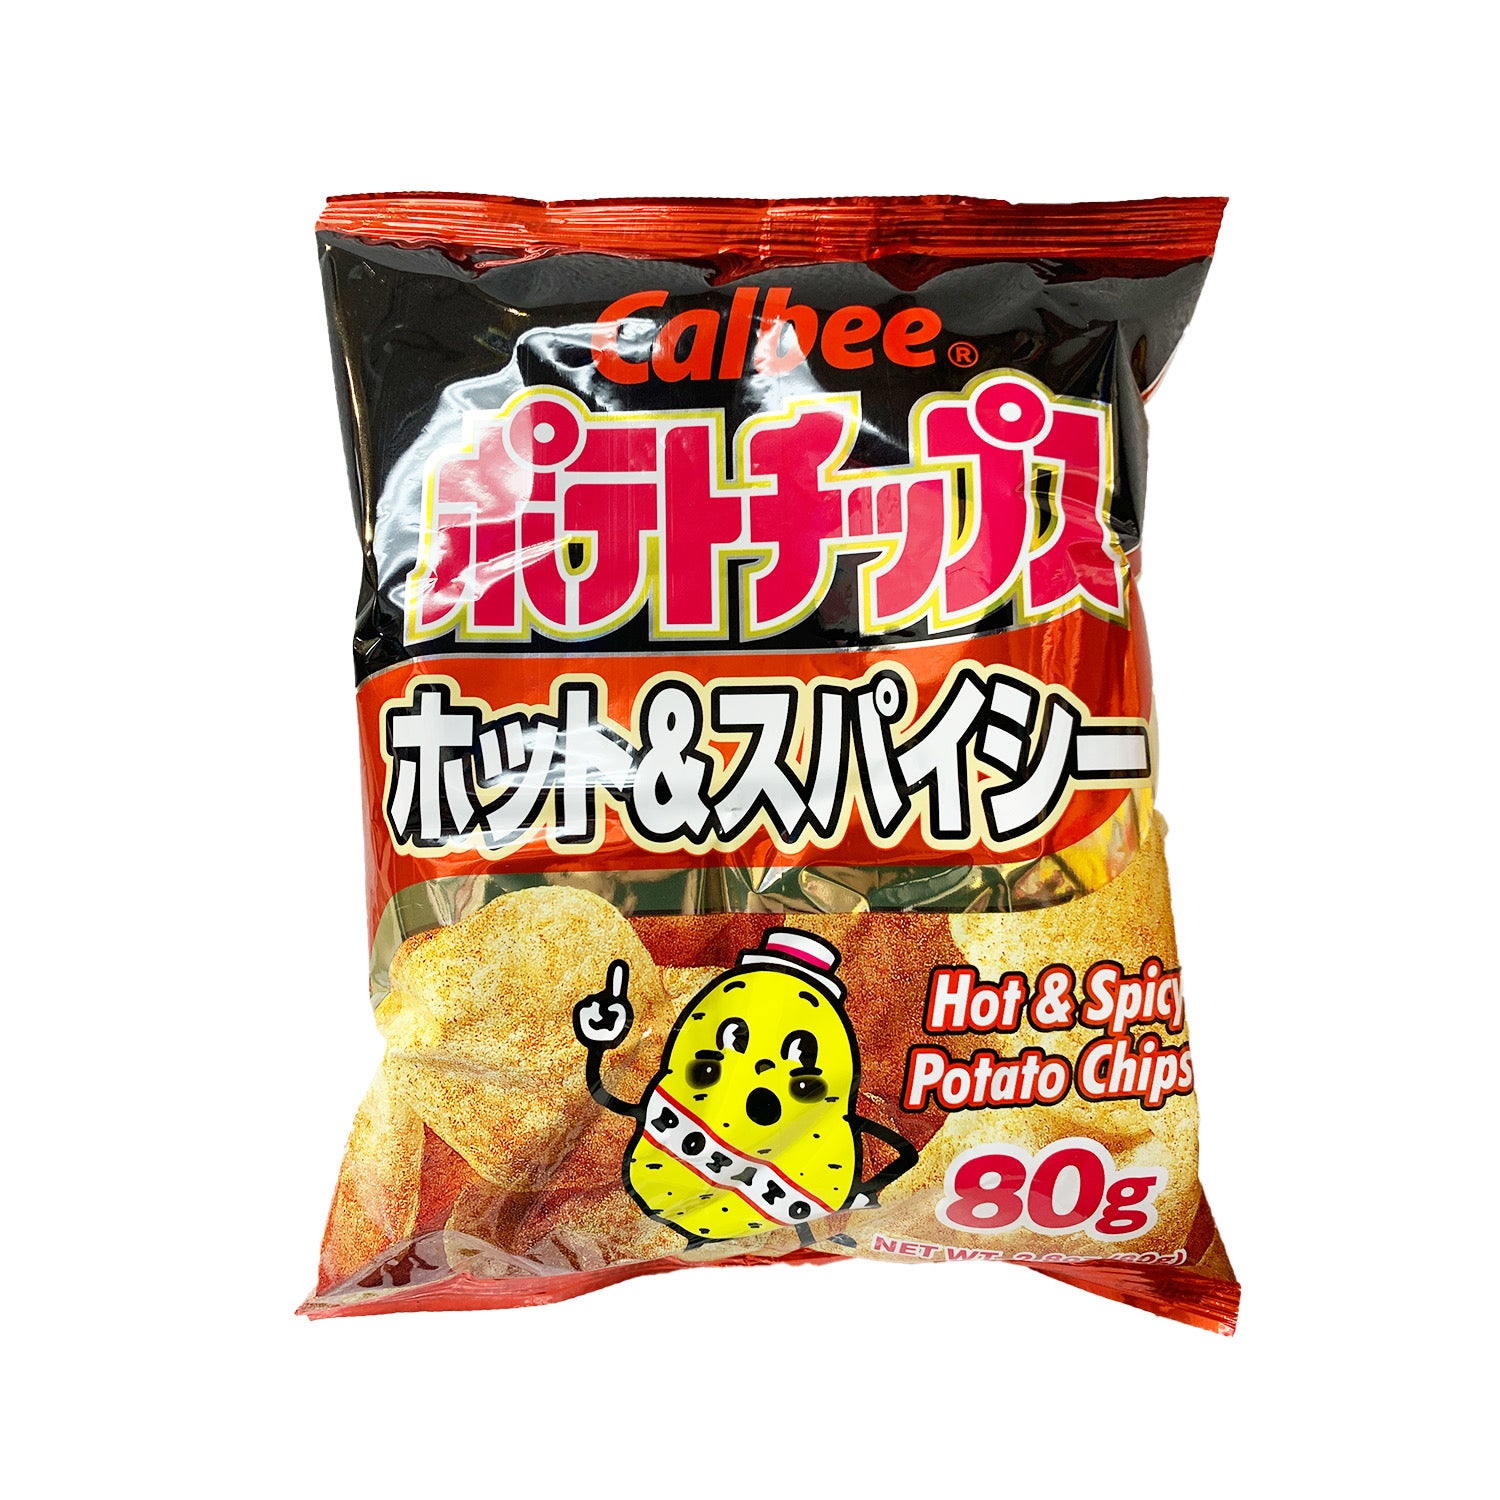 Calbee Potato Chips Hot & Spicy Flavor 卡比薯片 辣味